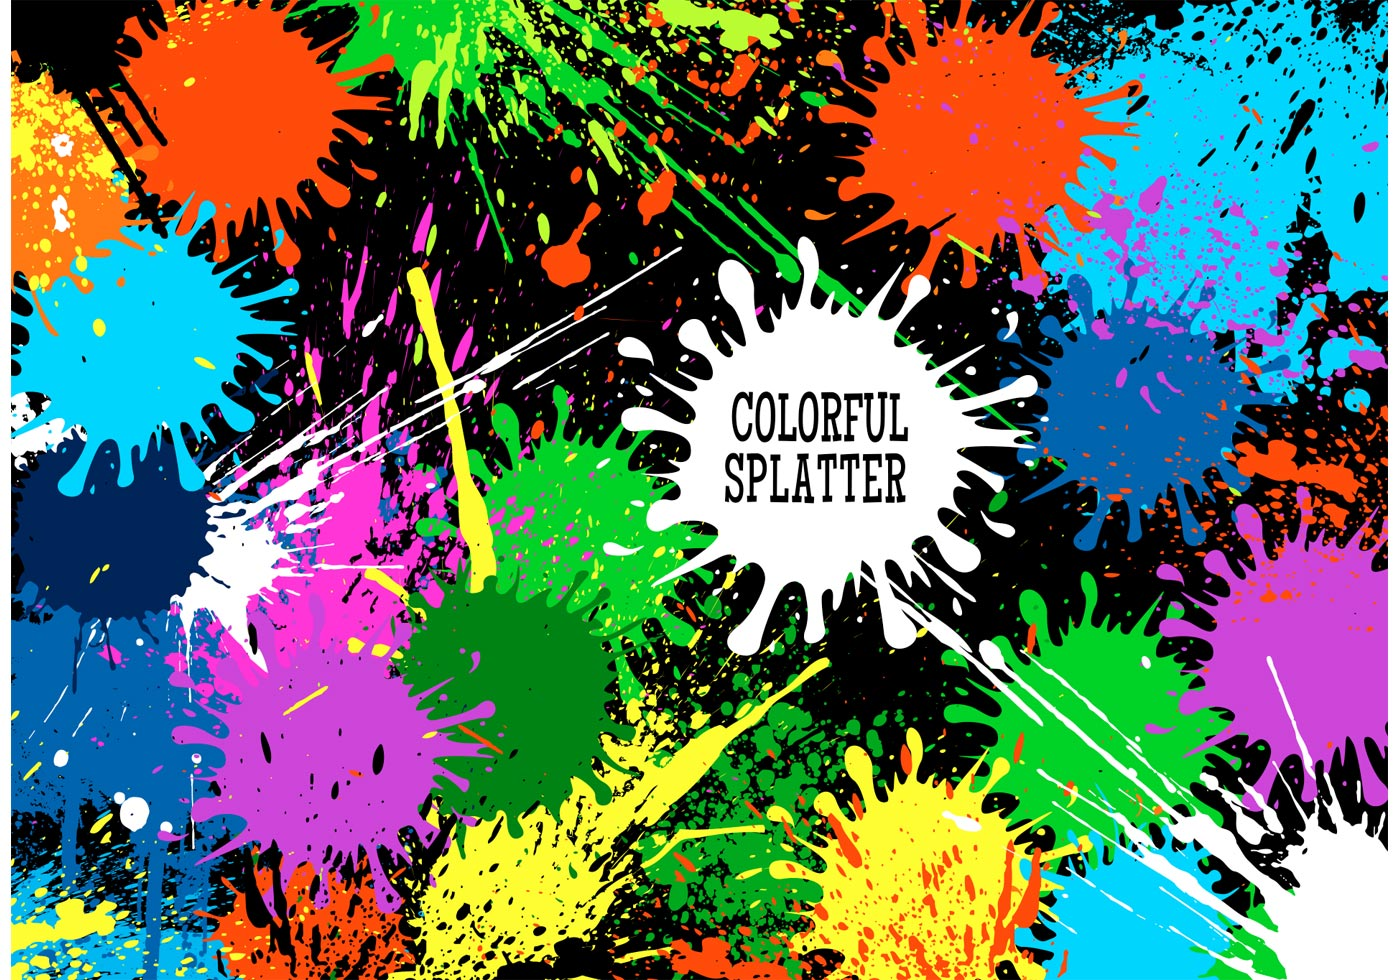 Free Vector Colorful Splatter Background - Download Free ...